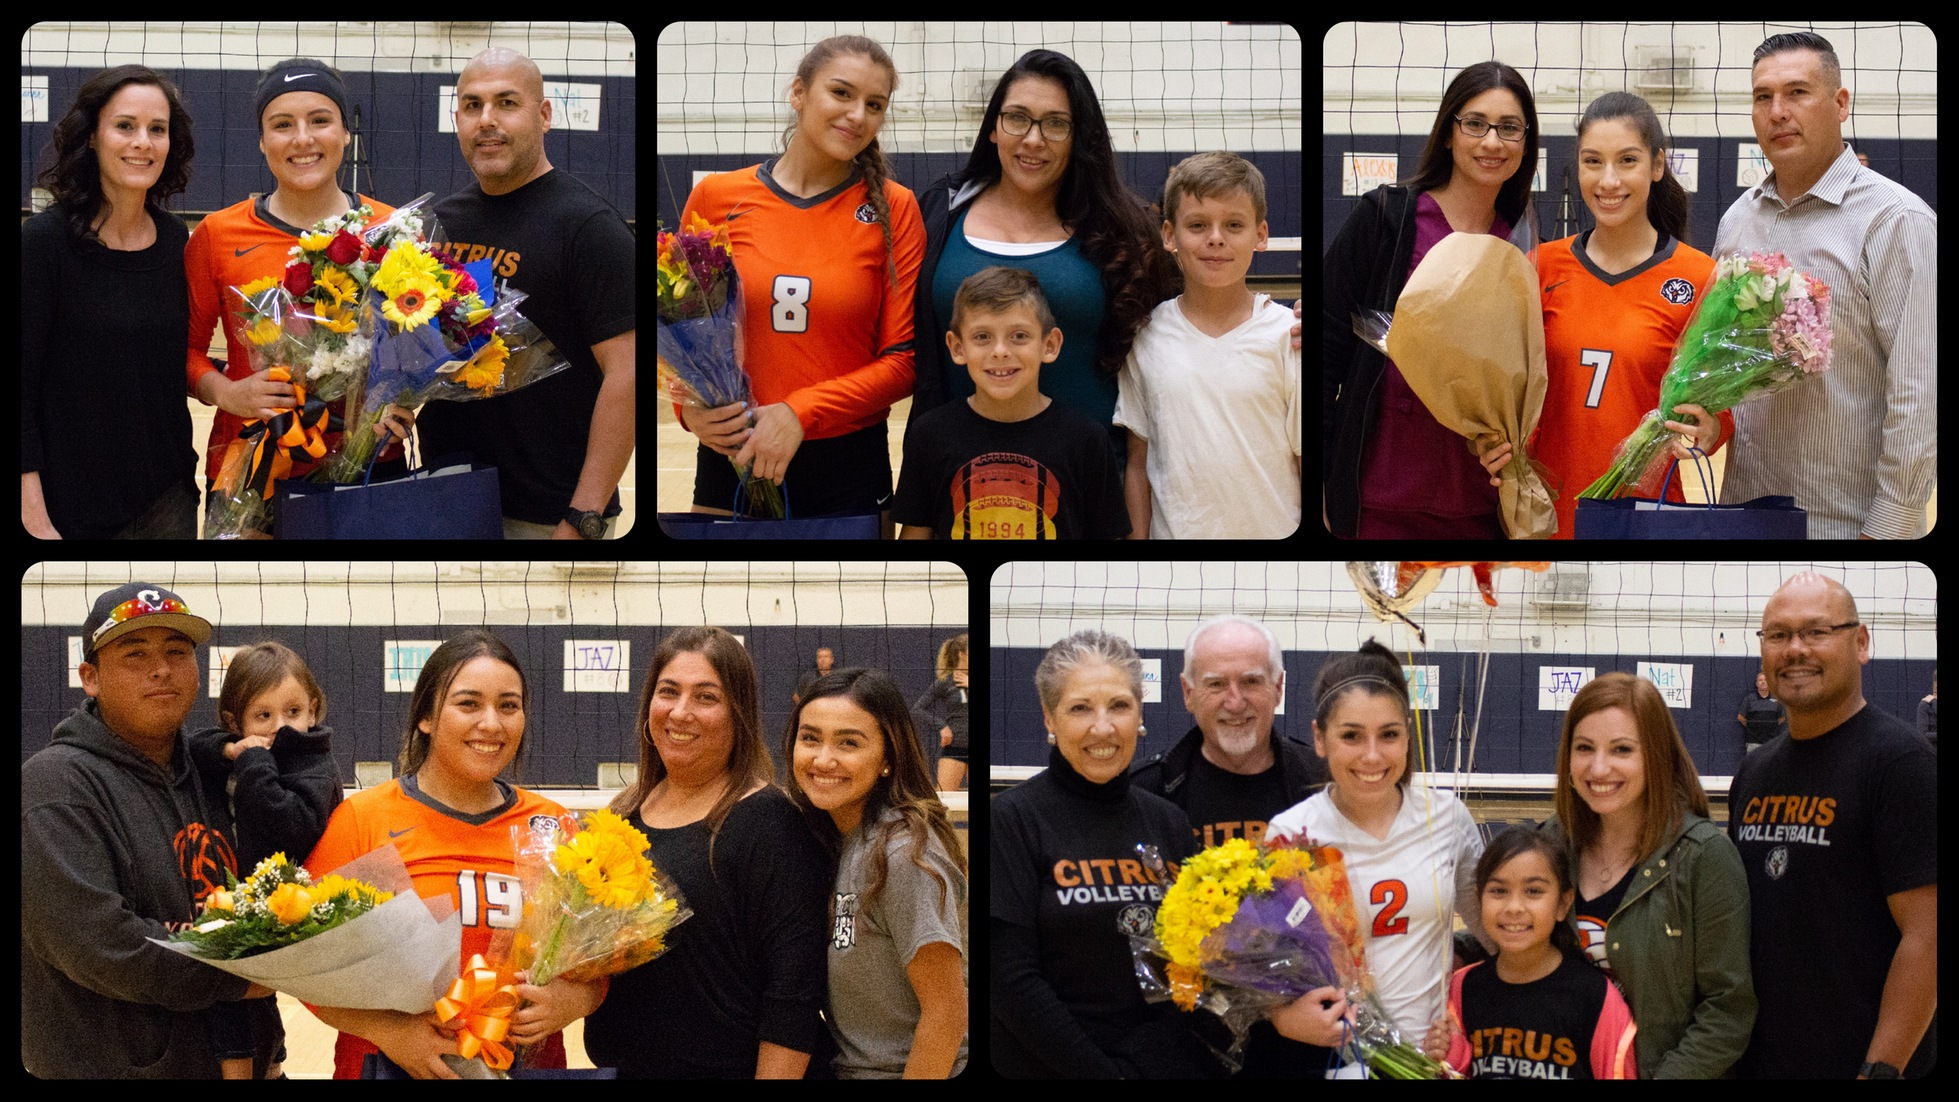 Citrus Volleyball's 2018 Sophomore class. Clockwise from upper left: Alexsis Rodriguez, Jazmine Carlos, Iris Bernal, Natalia Castro, Julianna Aceituno. Images: Brian Cone